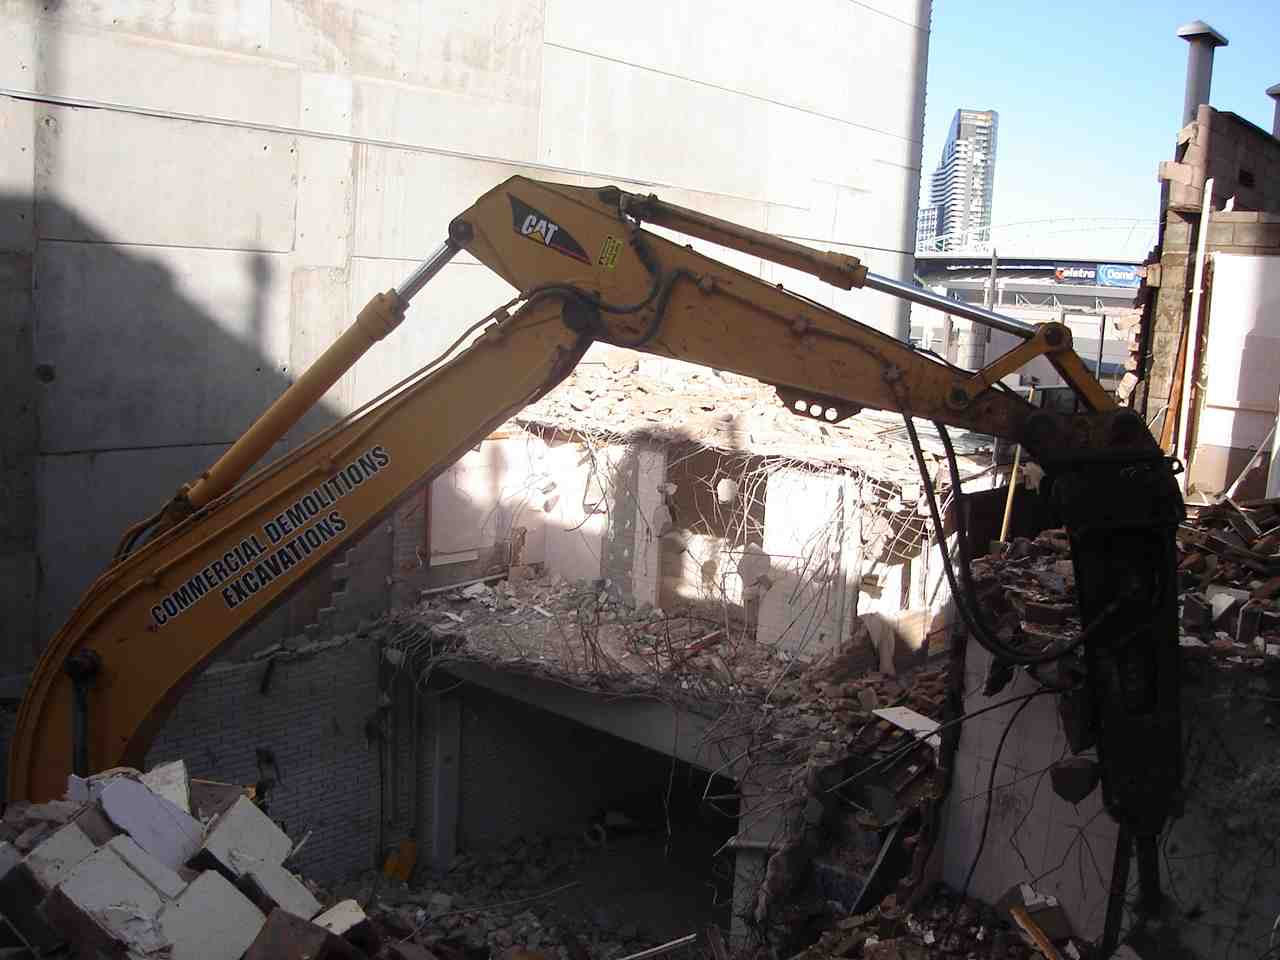 commercial_demolition_SpencerSt2.jpg